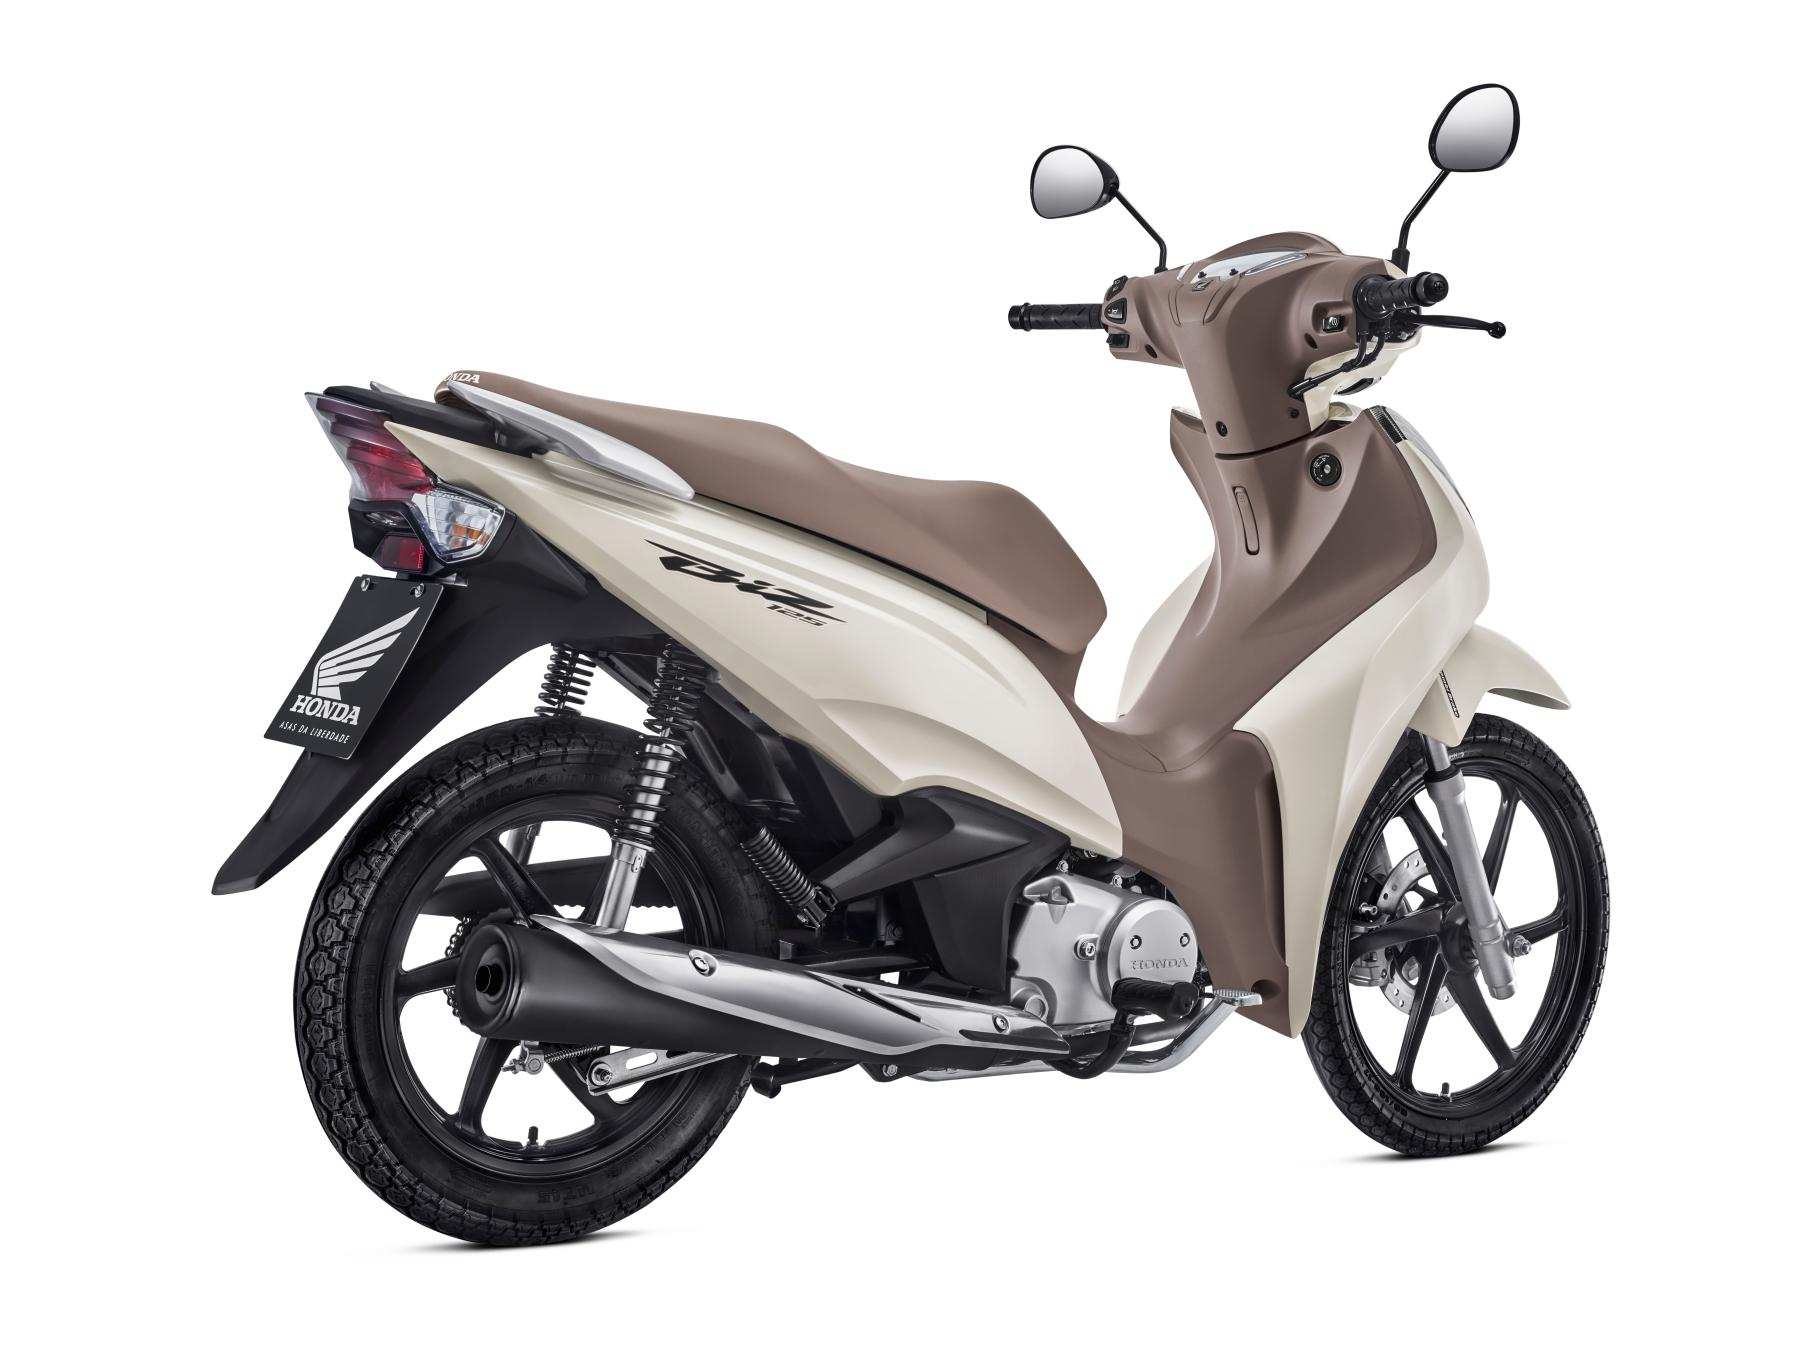 55 All New Honda Biz 2019 Photos with Honda Biz 2019